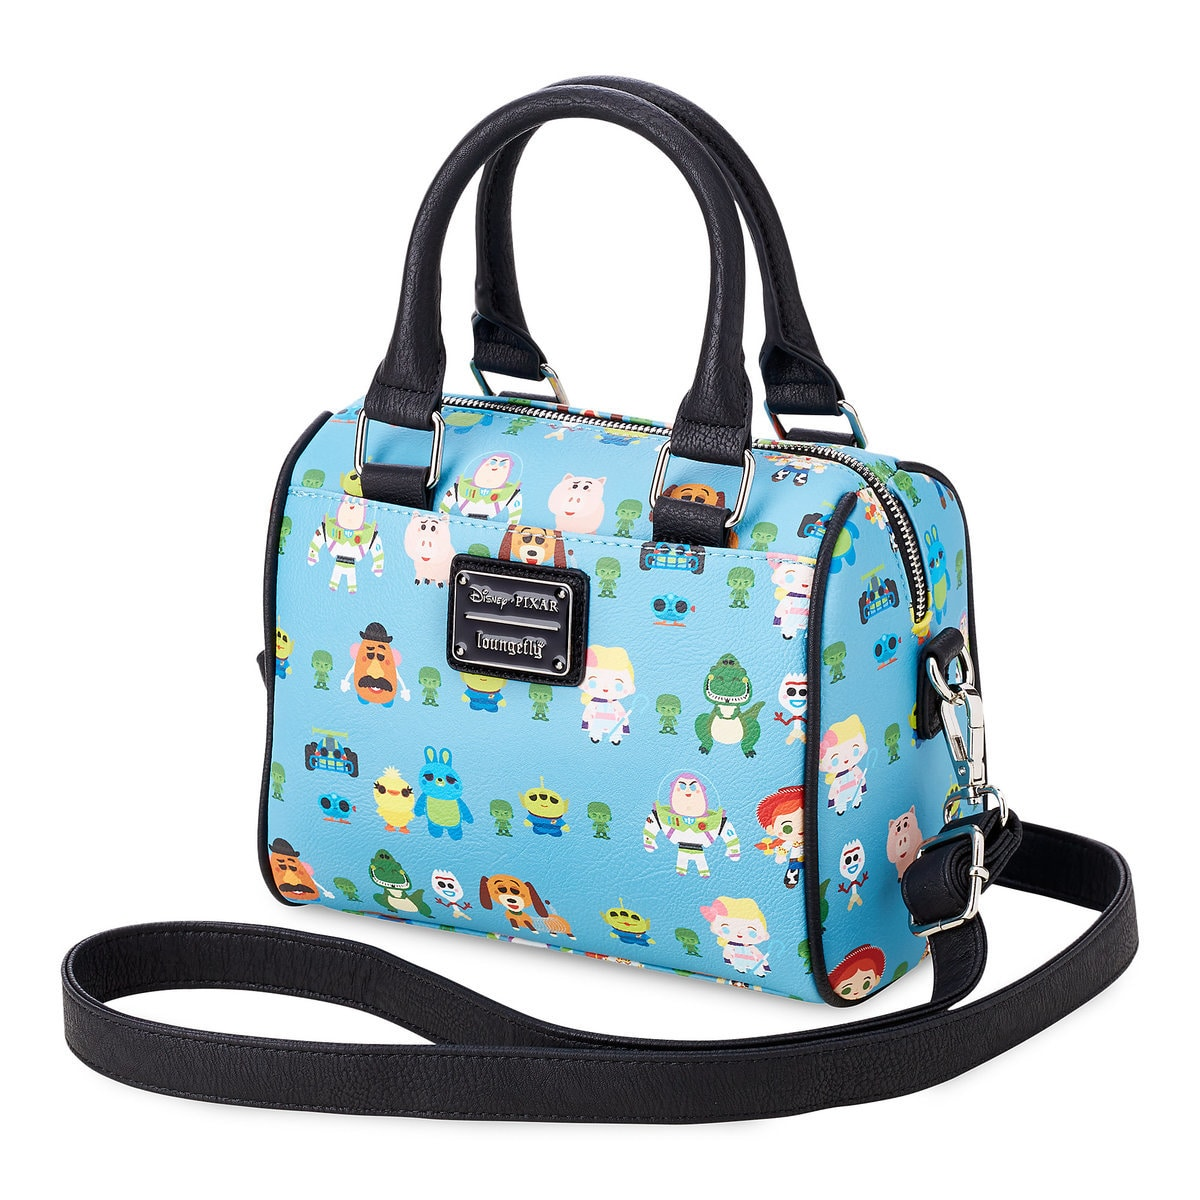 68bc0194f6 Product Image of Toy Story 4 Duffel Bag by Loungefly # 1